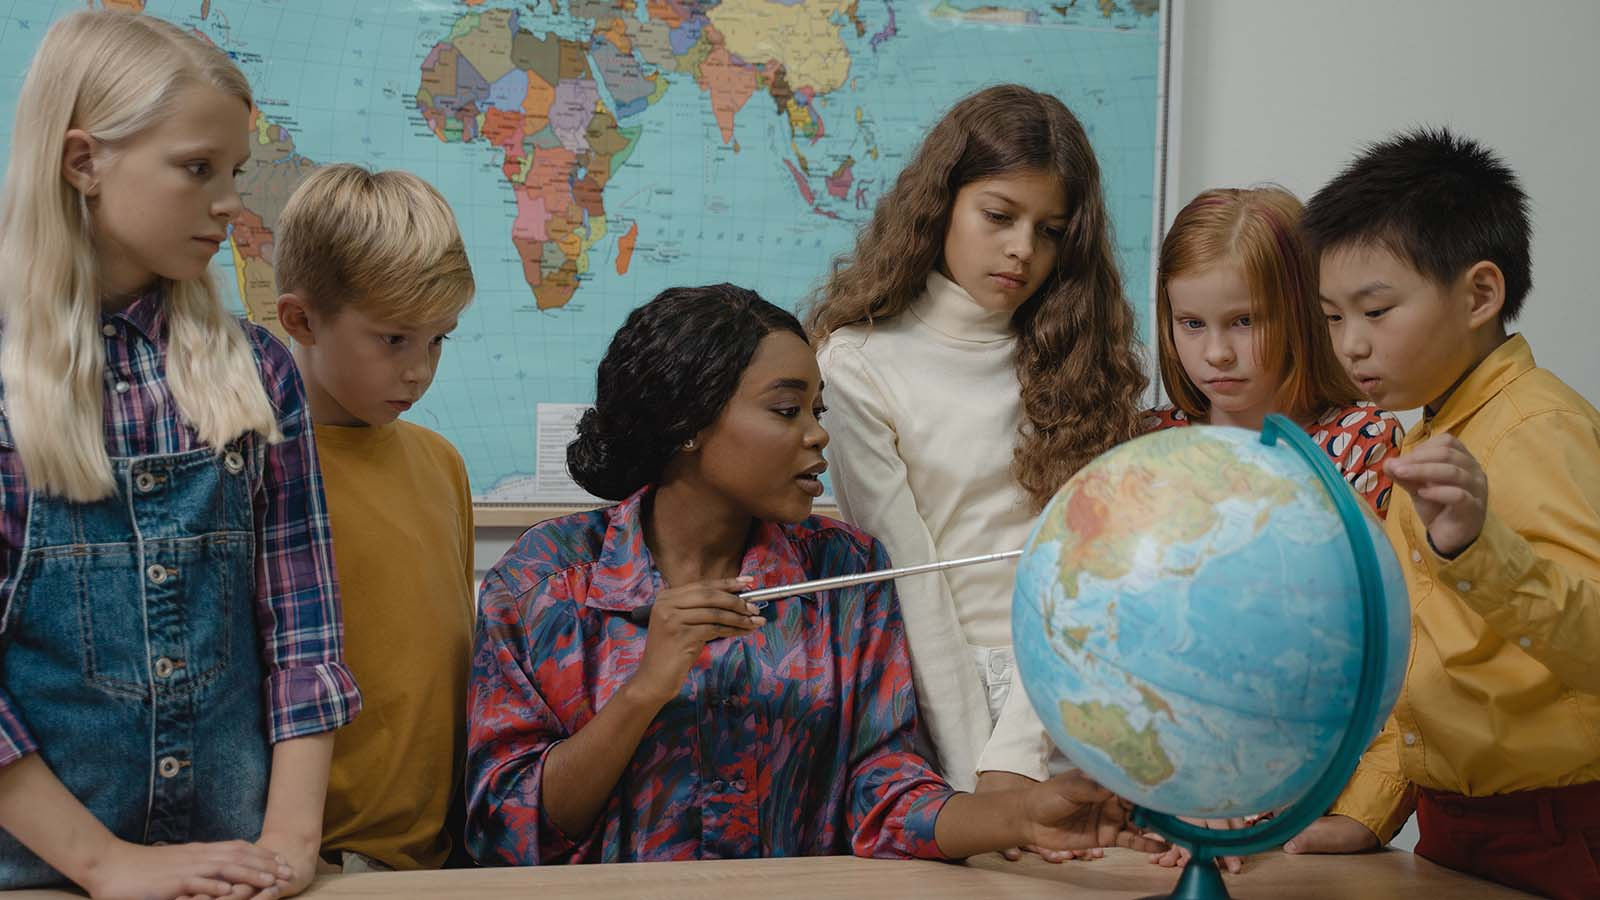 Children learning in a classroom about global affairs.